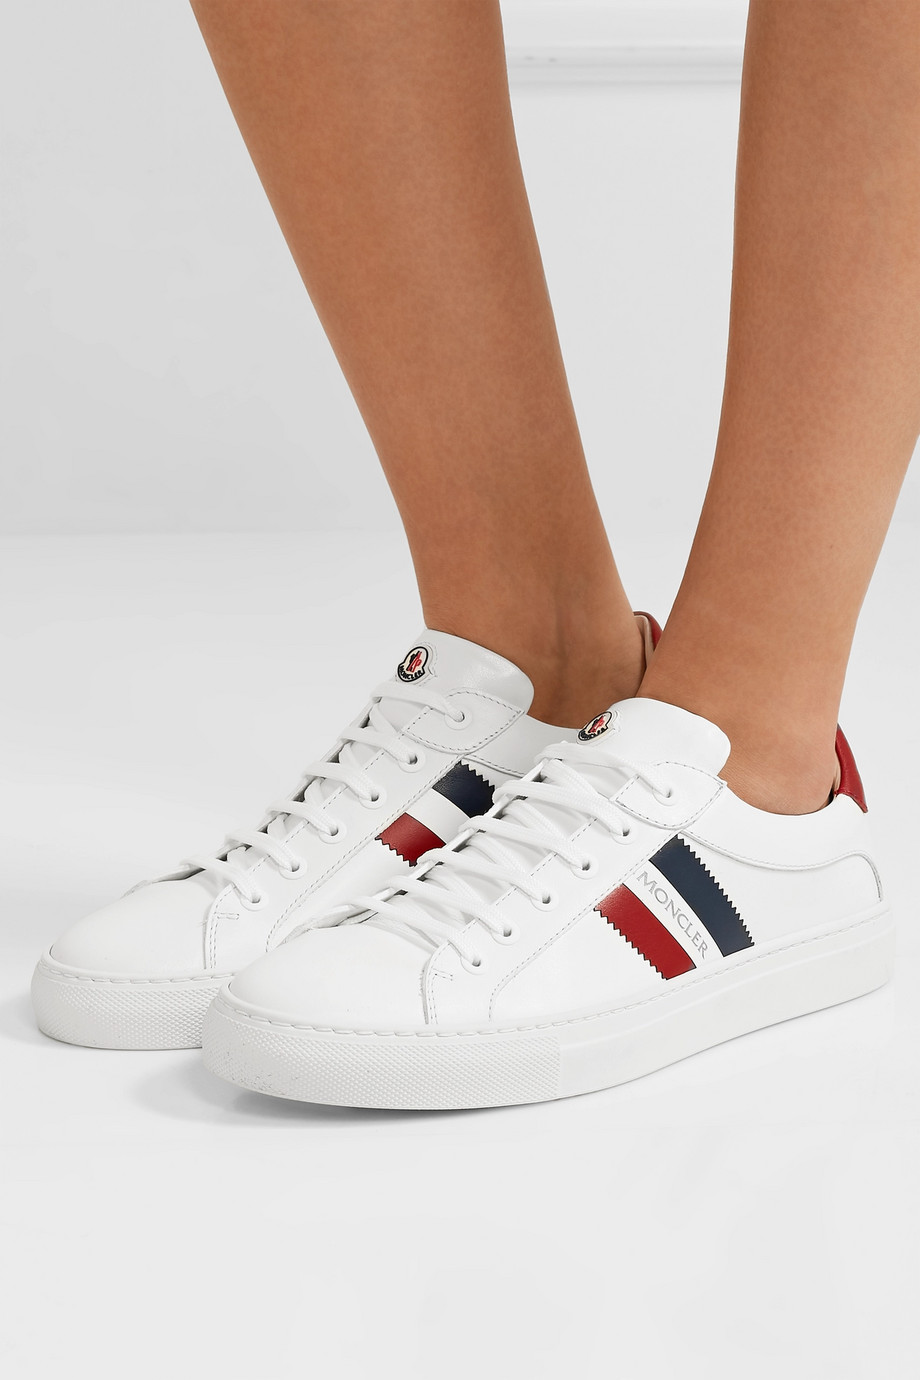 Moncler Leni leather sneakers